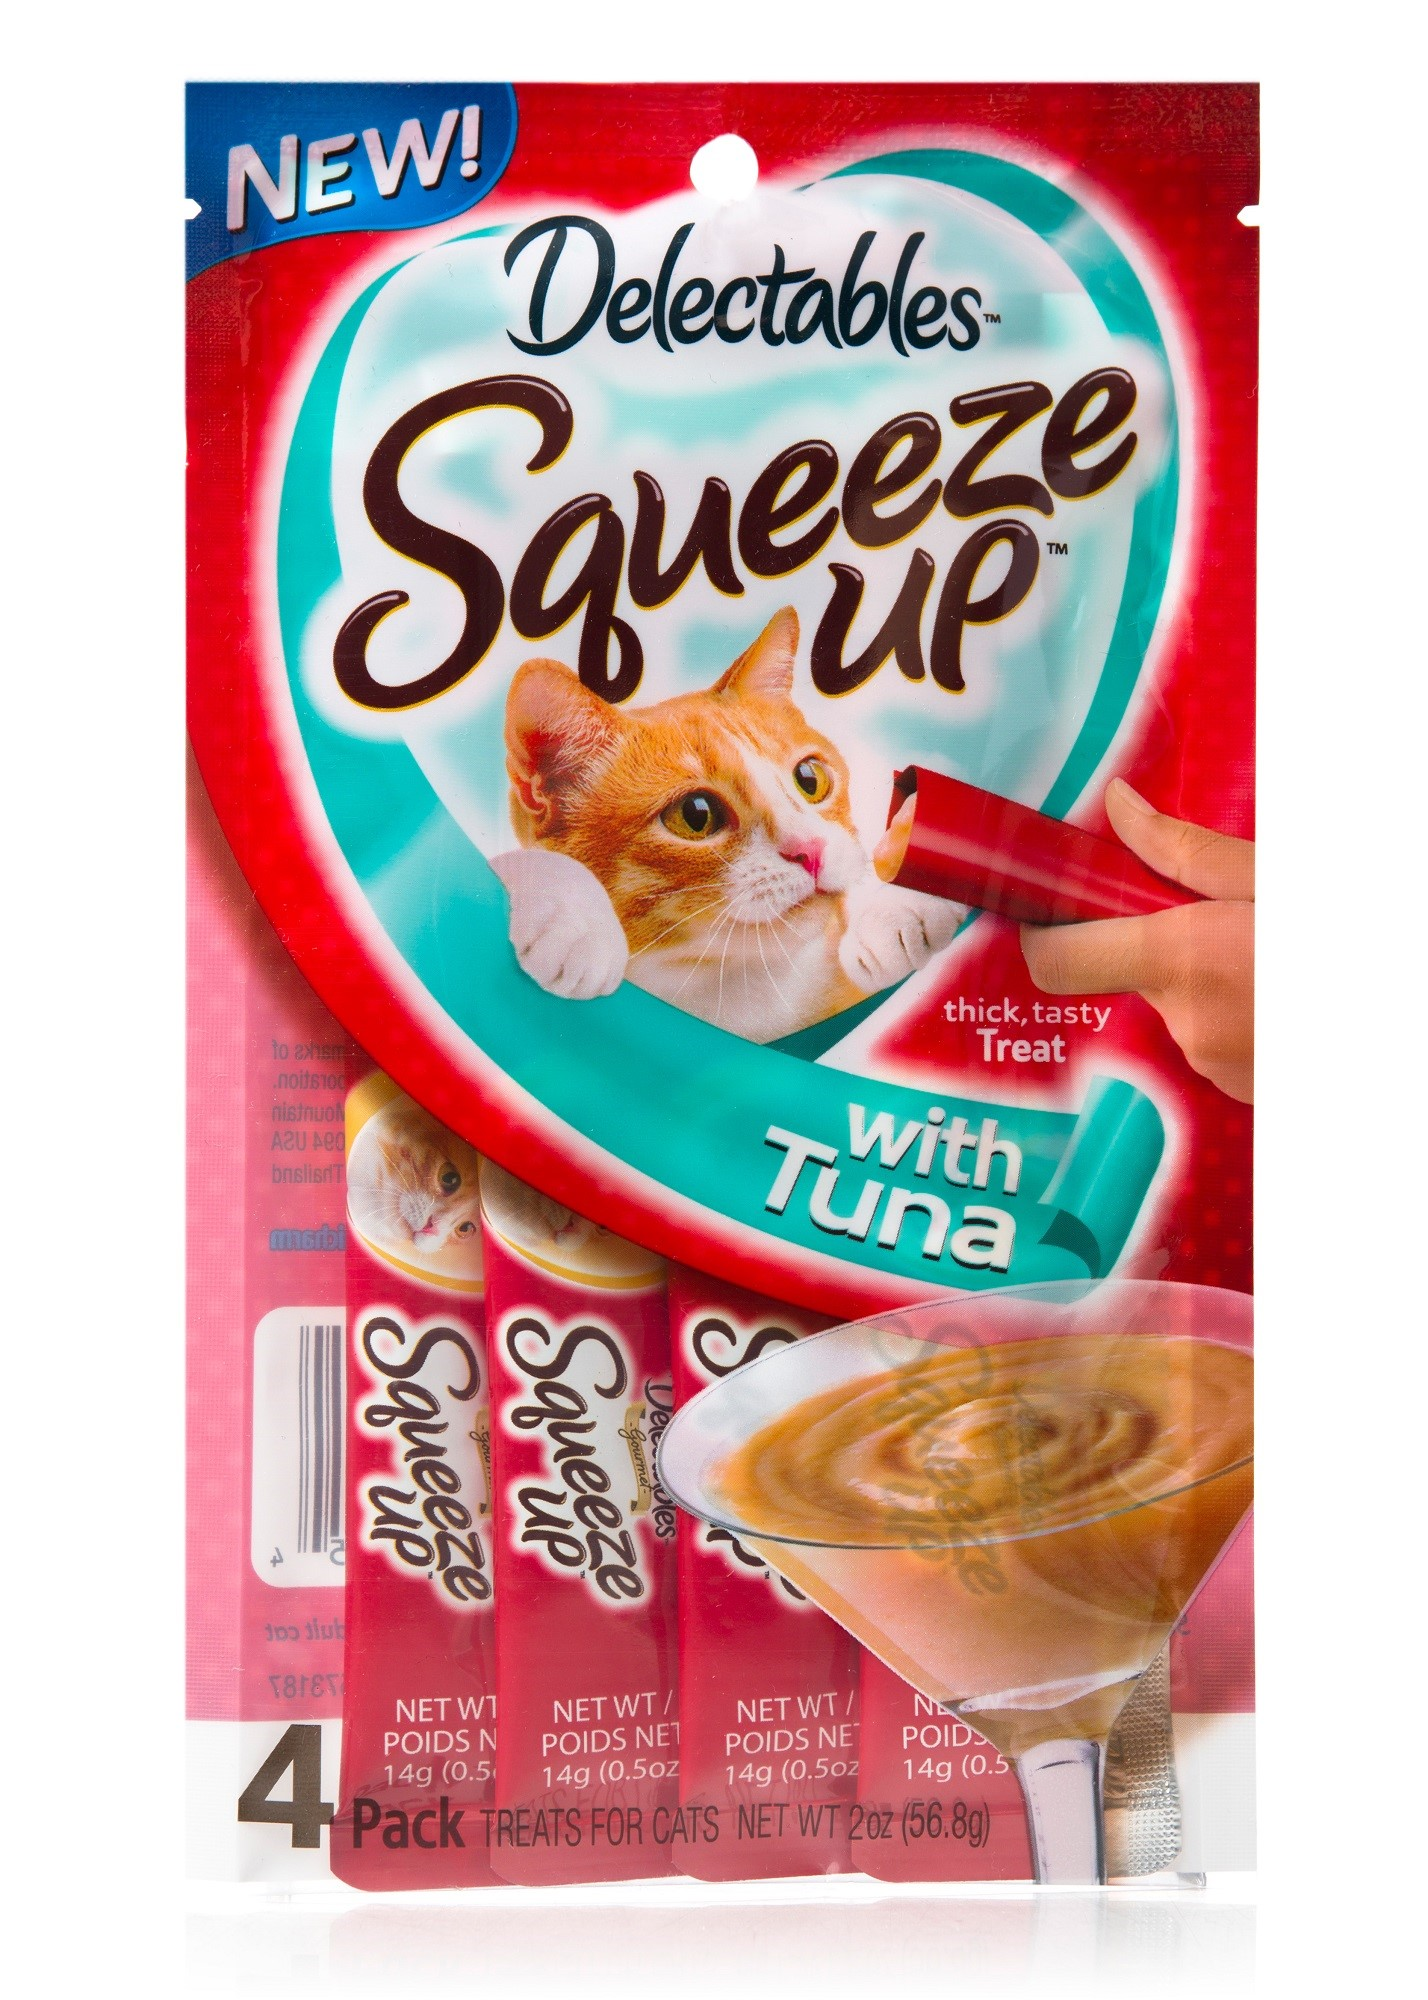 Delectables Squeeze Up Cat Treat Tuna 4ct by The Hartz Mountain Corporation